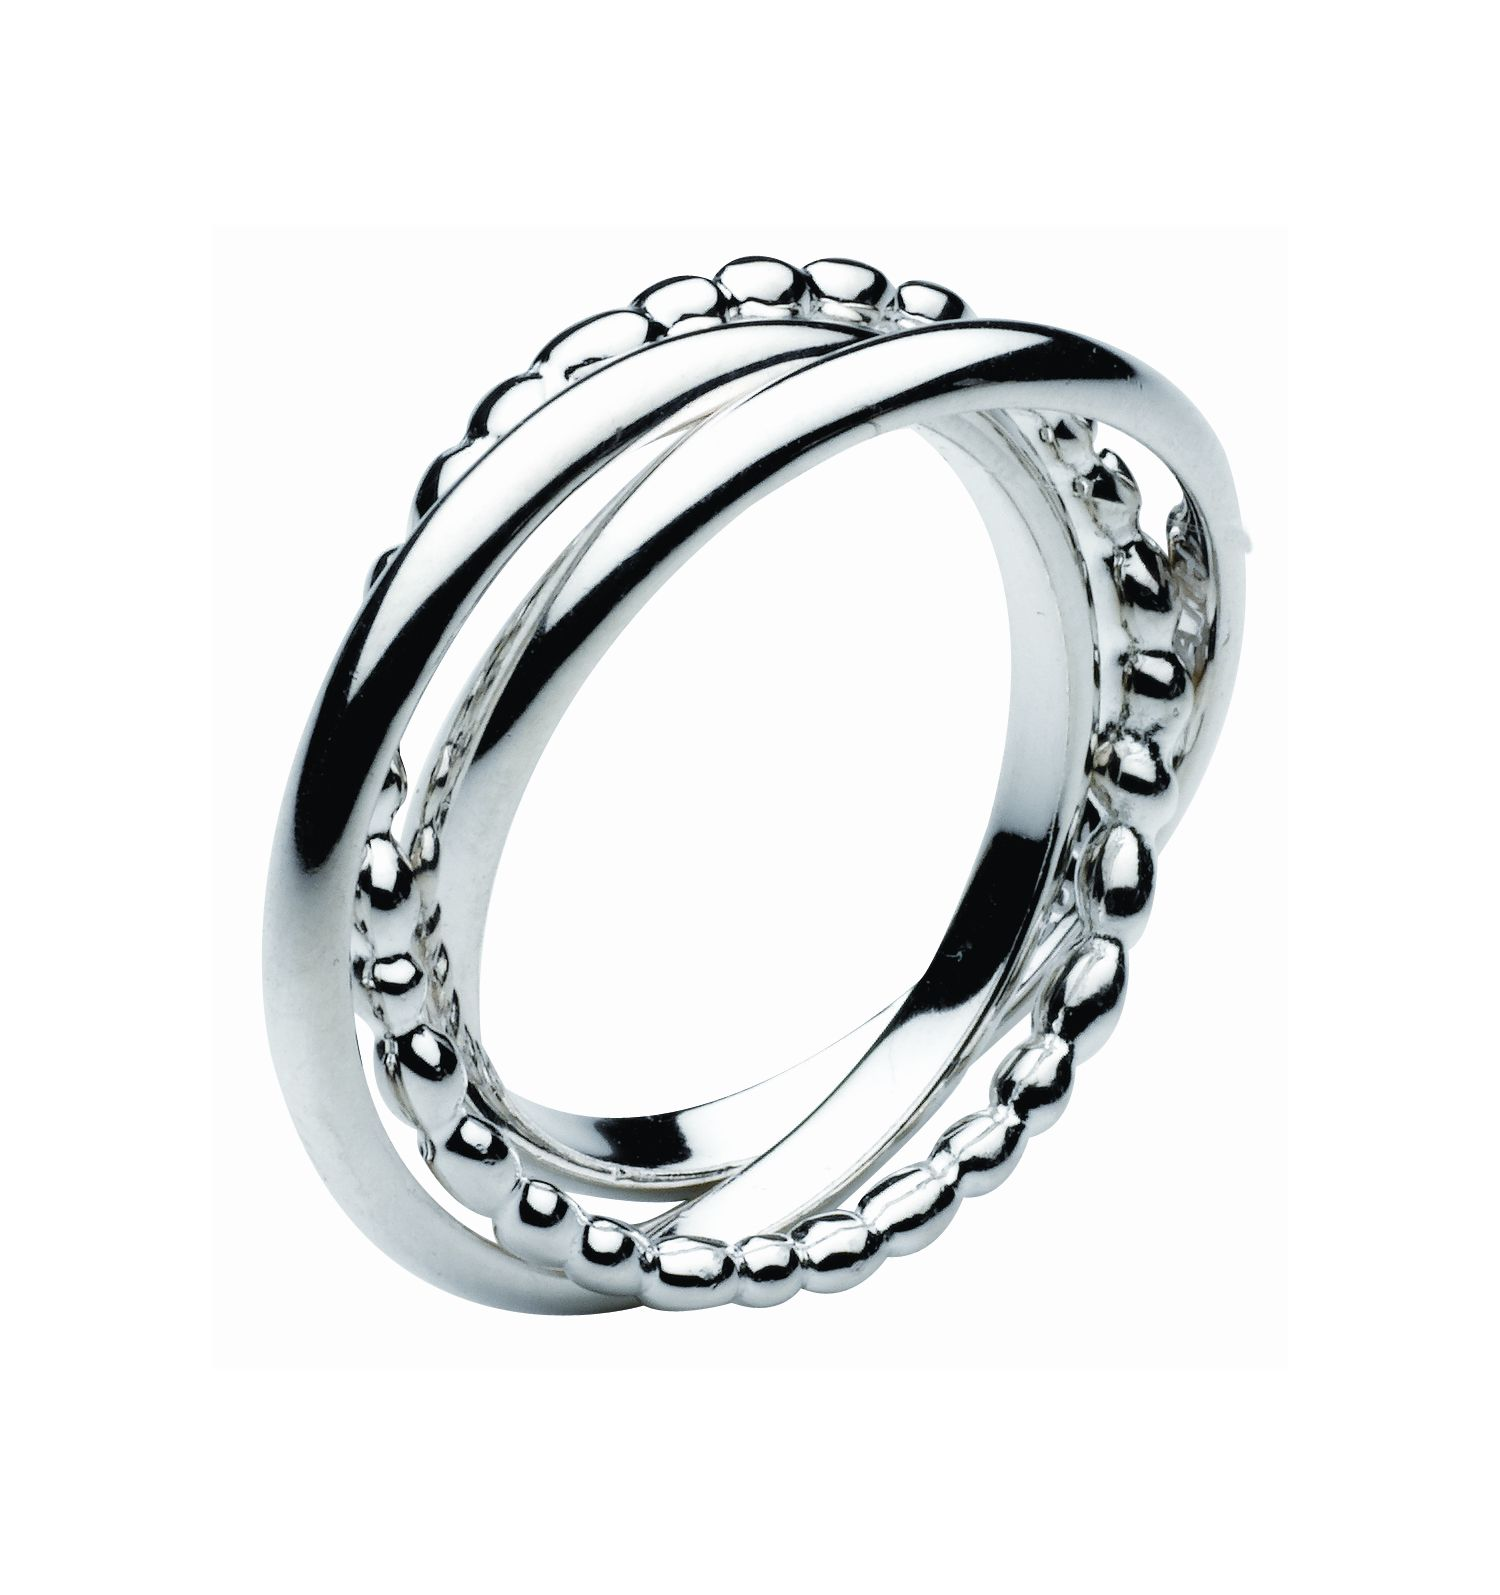 Kit Heath Sterling Silver Pebble Trickle Trio Ring, Silver